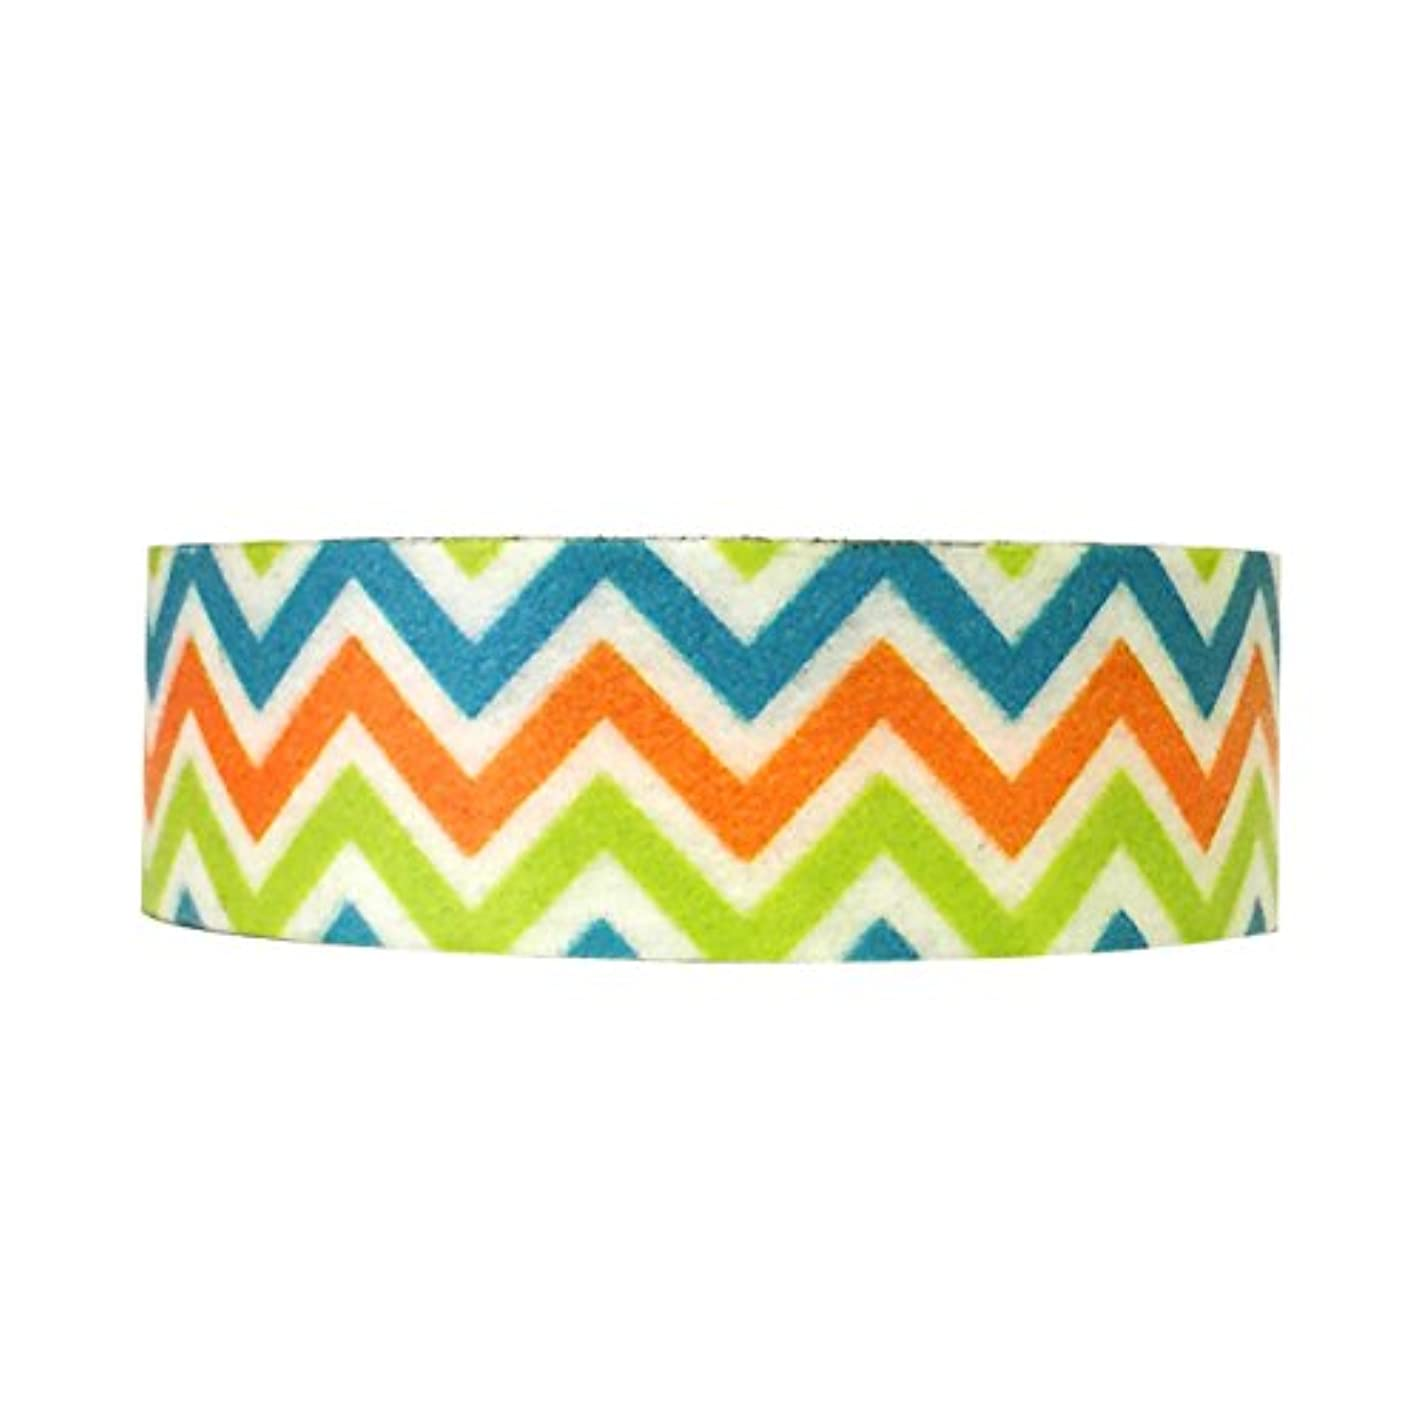 Wrapables Colorful Patterns Washi Masking Tape, Fiesta